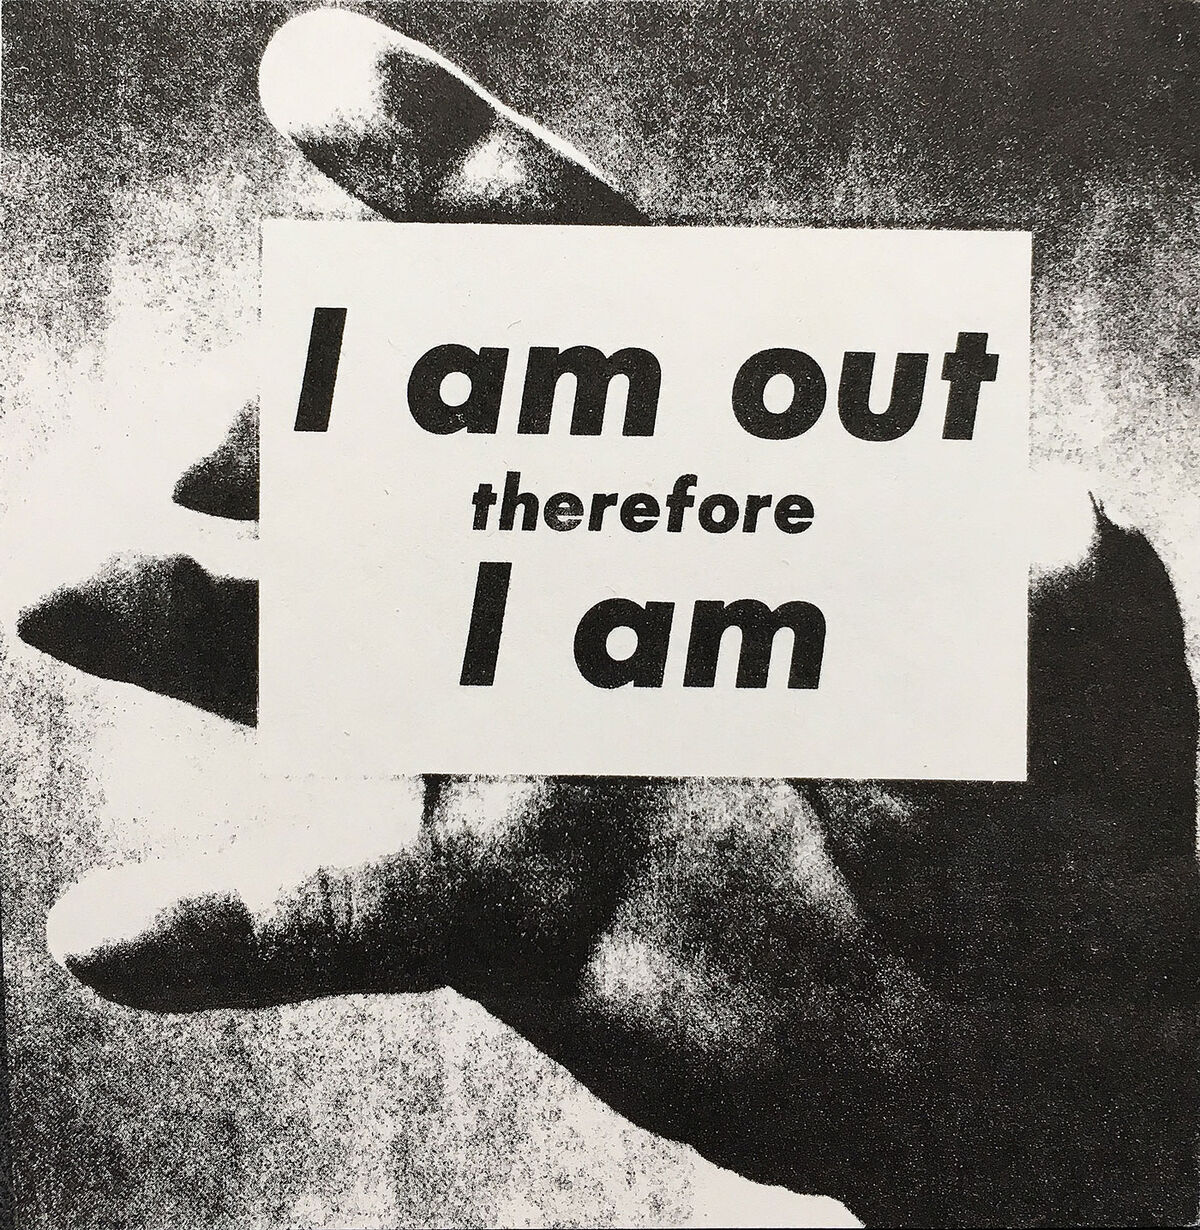 Adam Rolston, I Am Out Therefore I Am, 1989. © Adam Rolston. Courtesy of the artist.